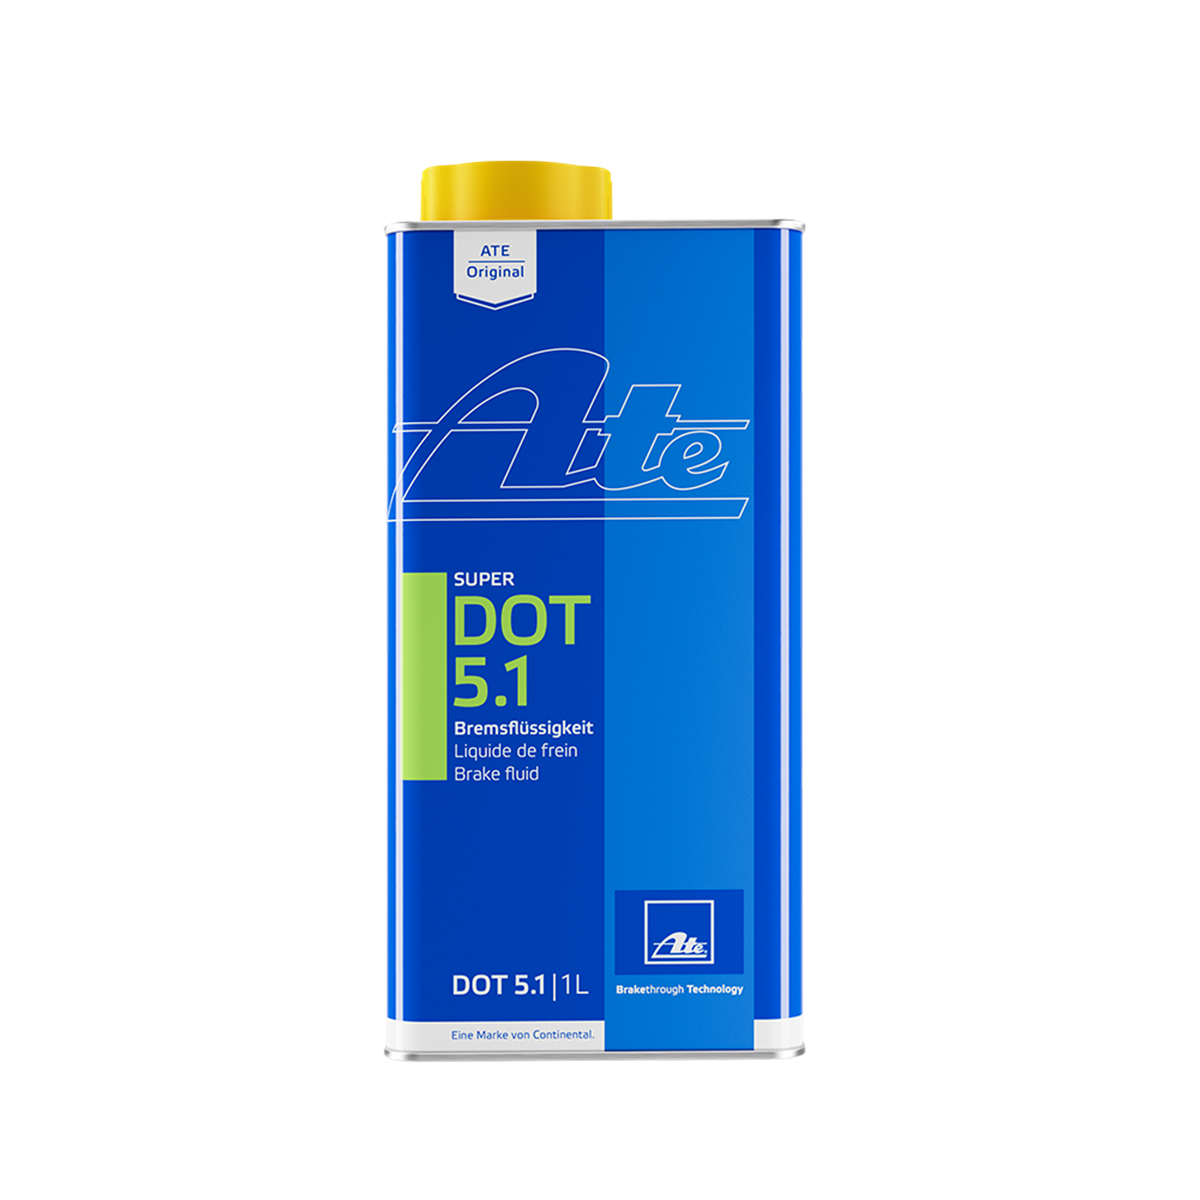 ATE Brake Fluid SUPER DOT 5.1